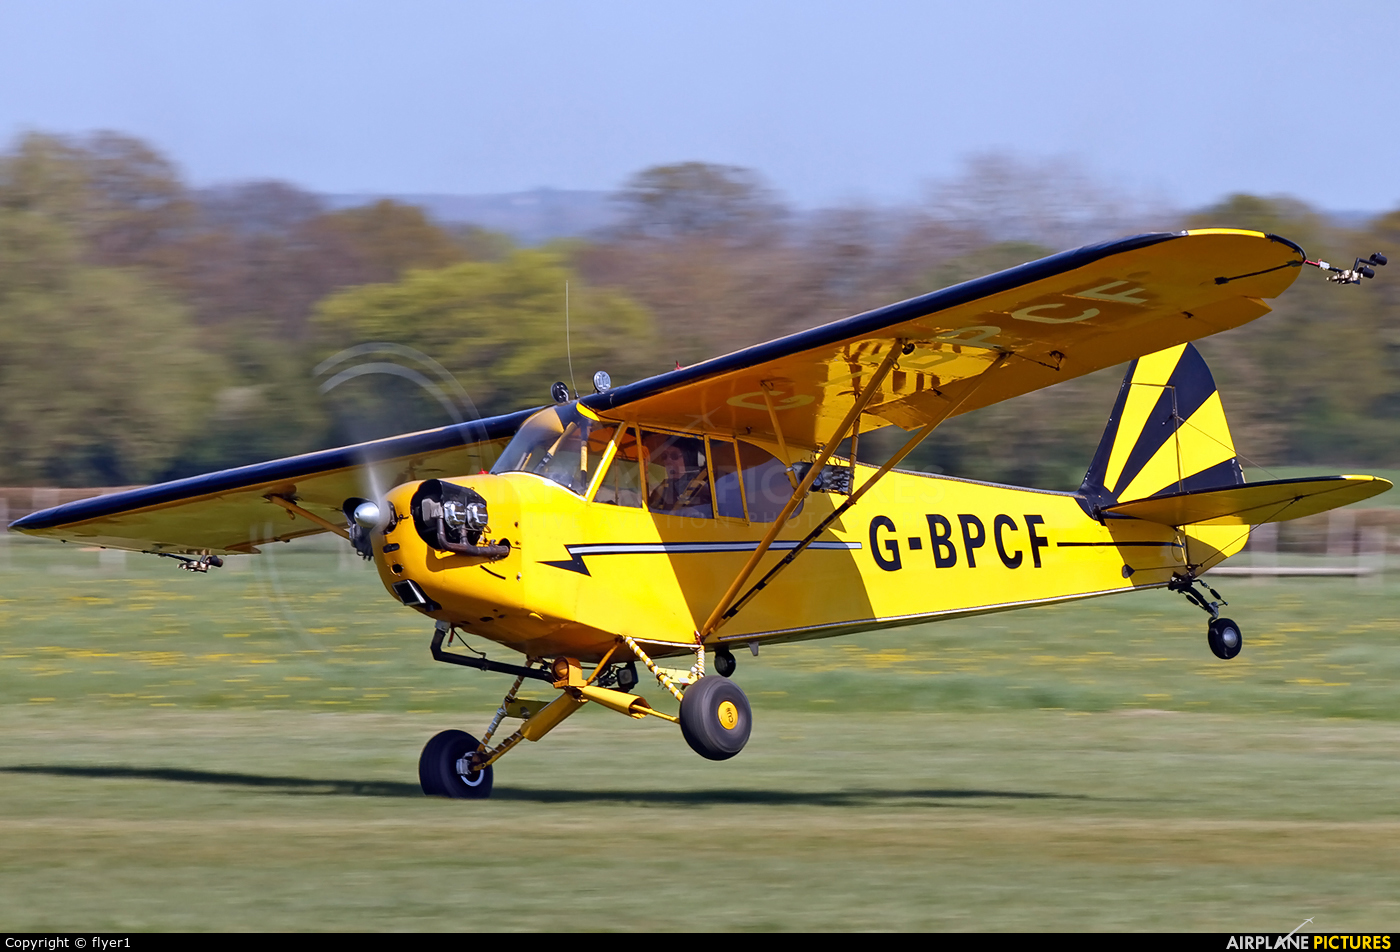 Private G-BPCF aircraft at Lashenden / Headcorn